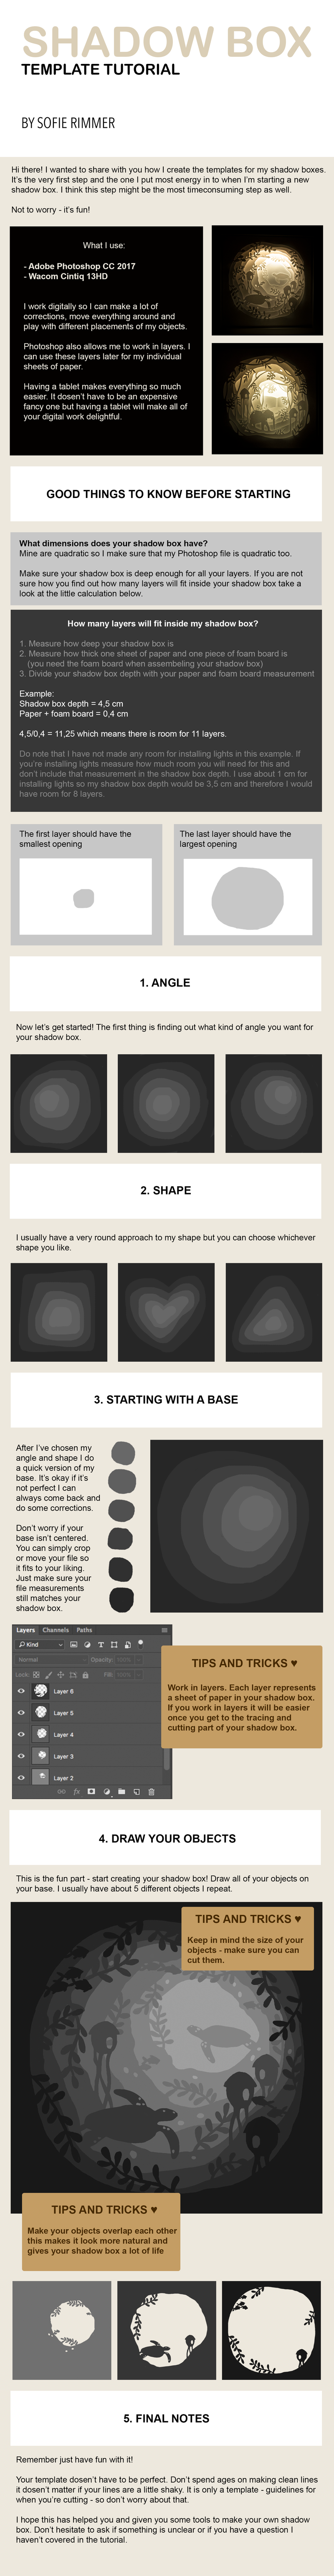 shadow box template tutorial by sofierimmer on deviantart